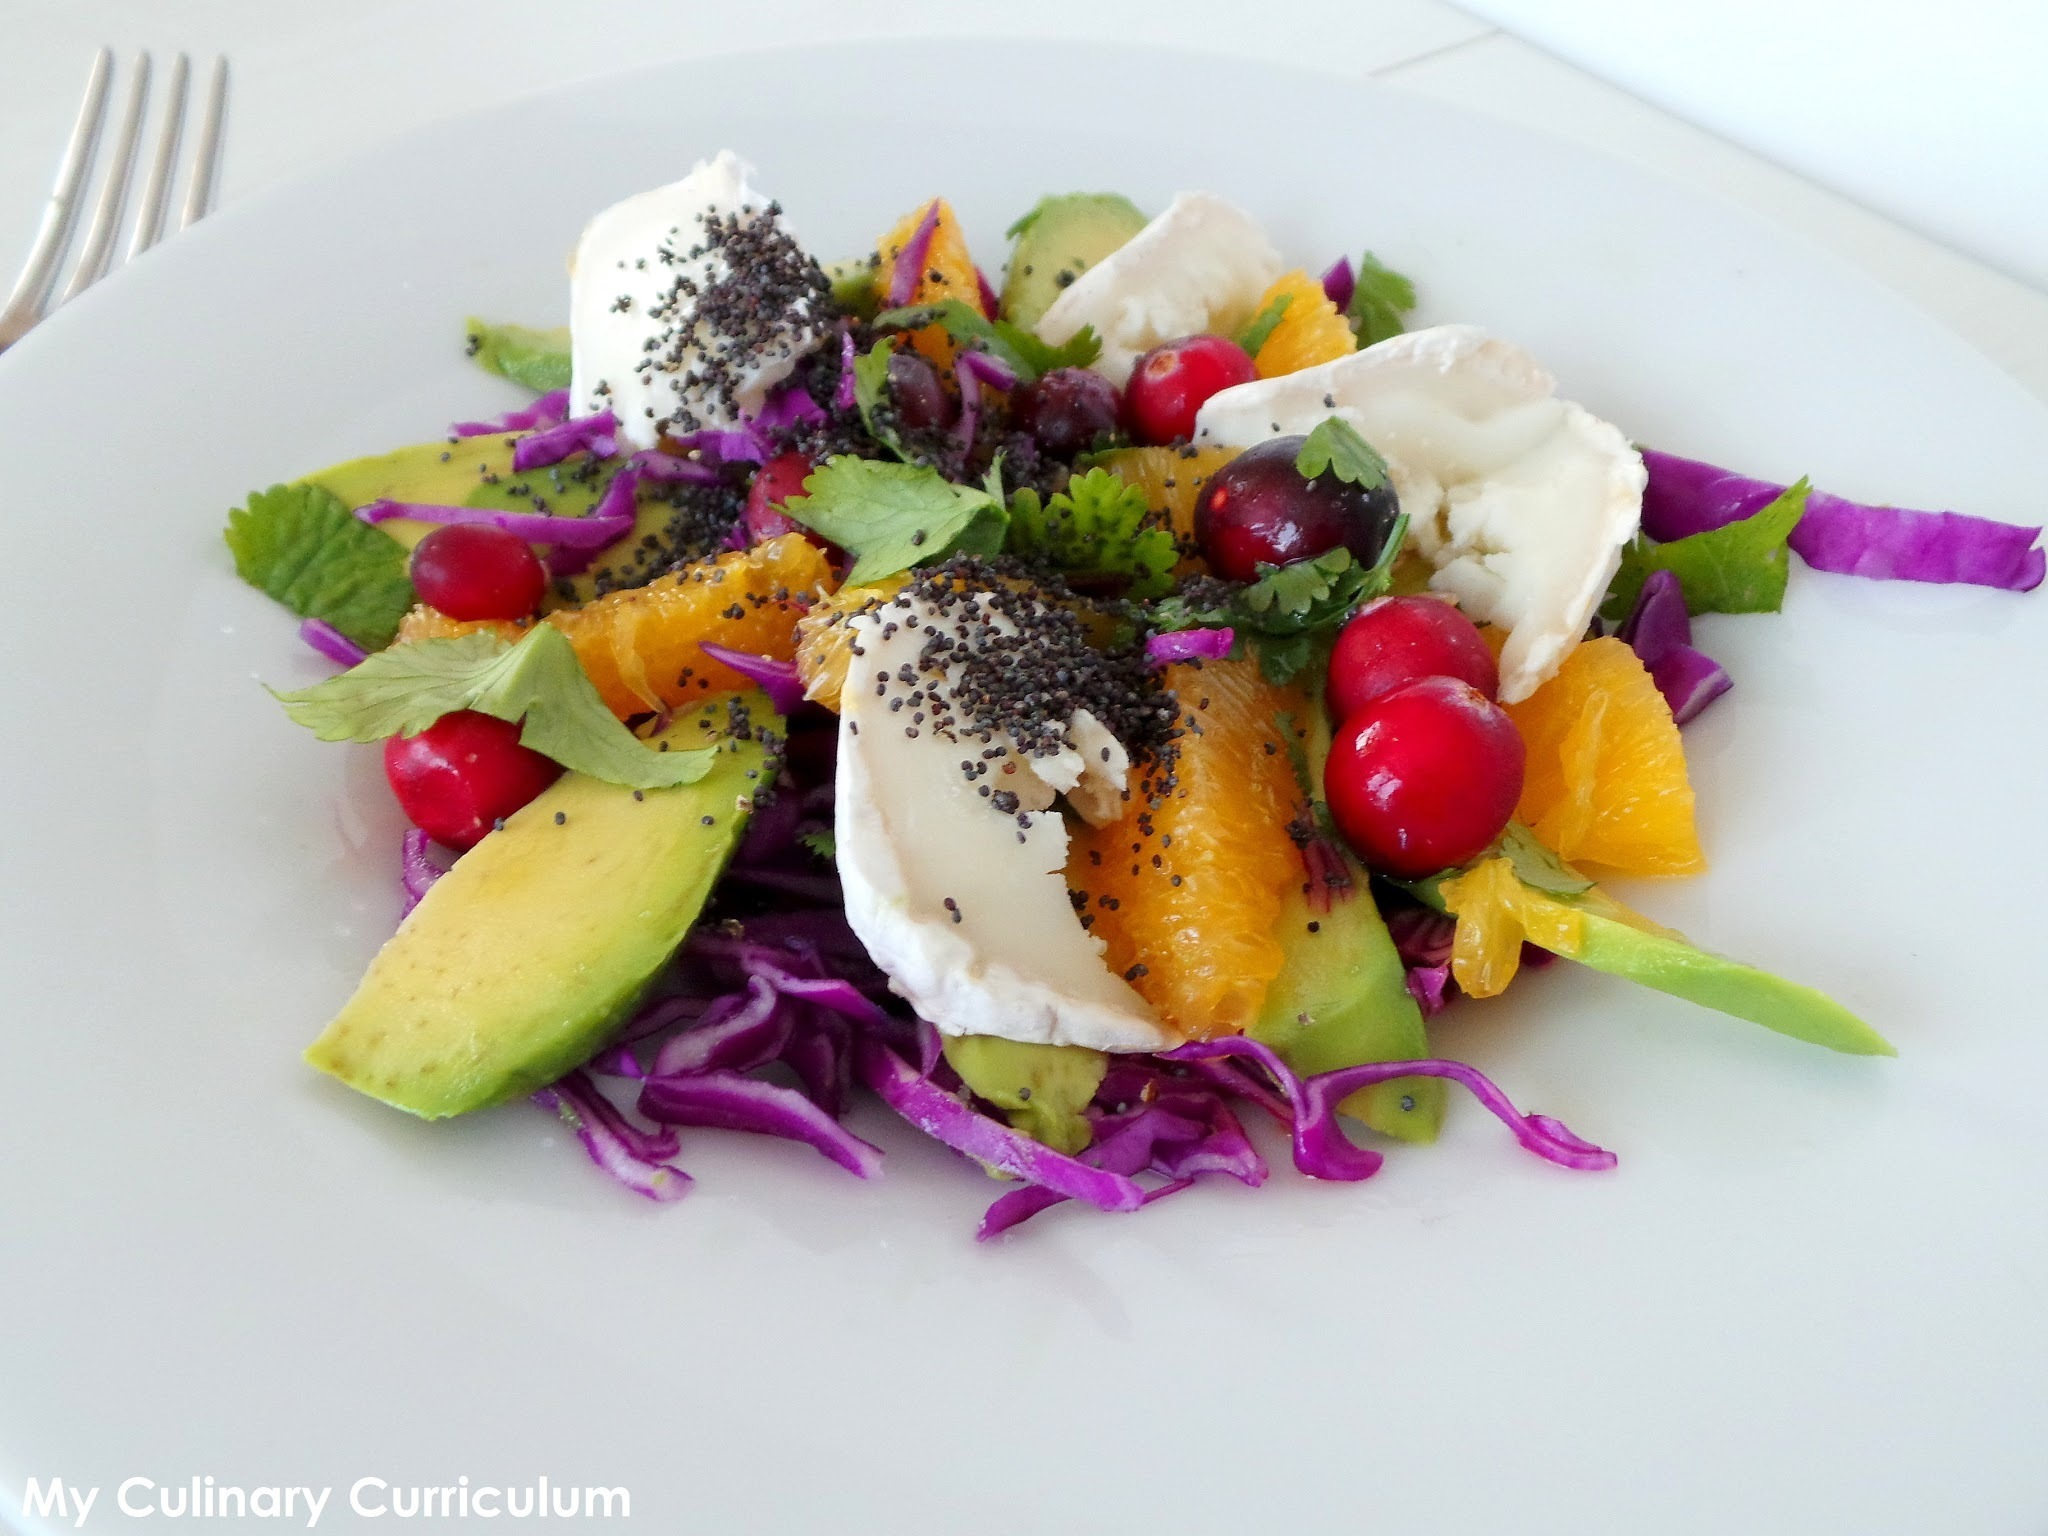 Salade de chou rouge, avocat,orange et chèvre (Red cabbage salad with avocado, orange and goat)